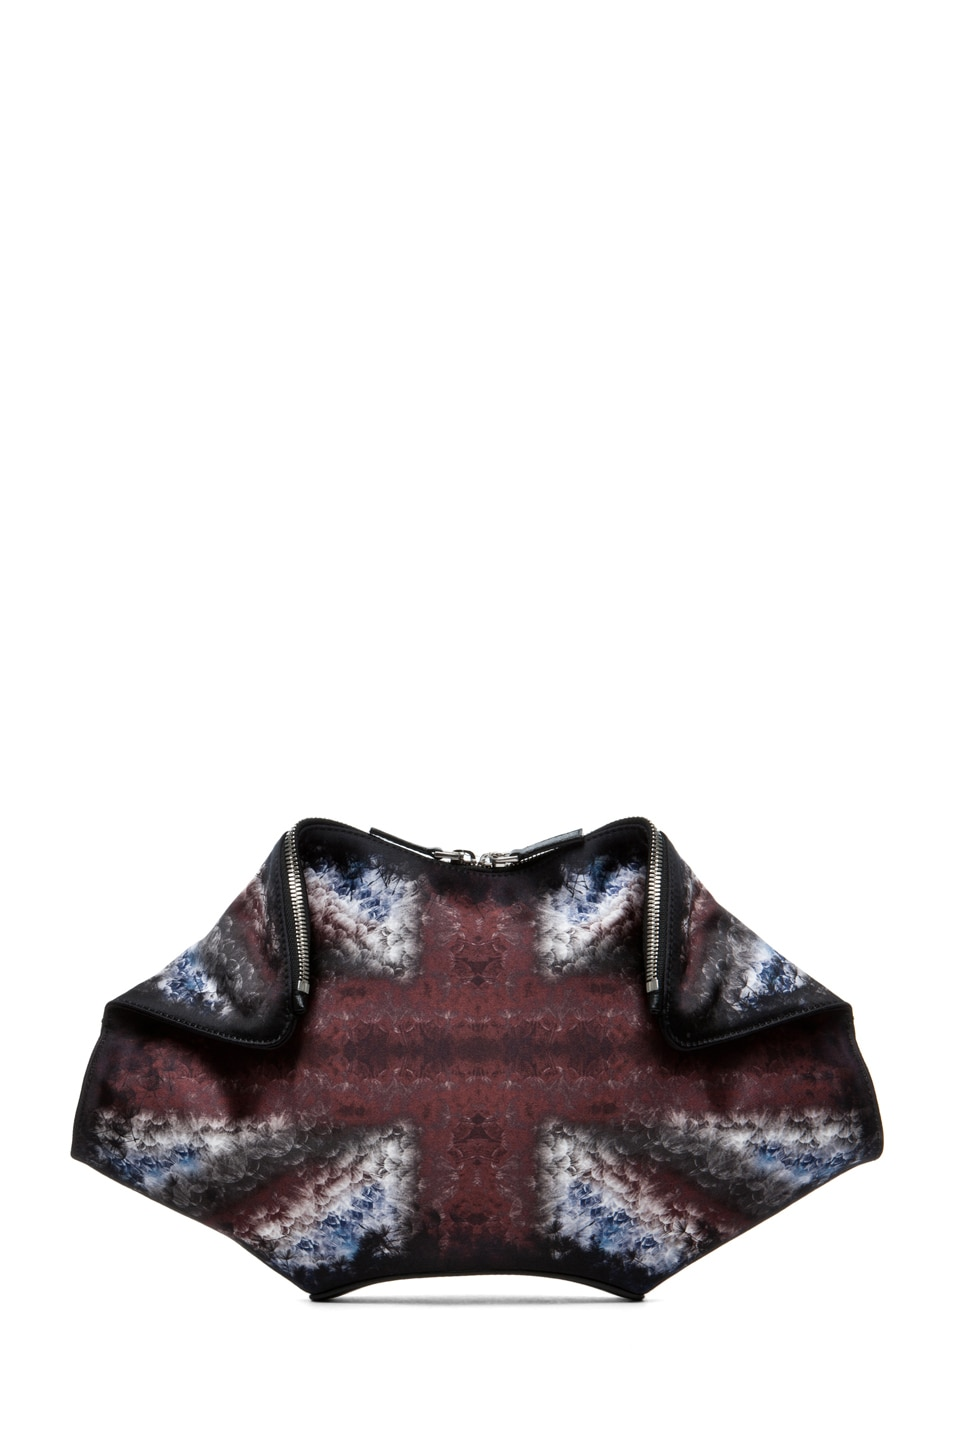 Image 1 of Alexander McQueen De Manta Clutch in Multi